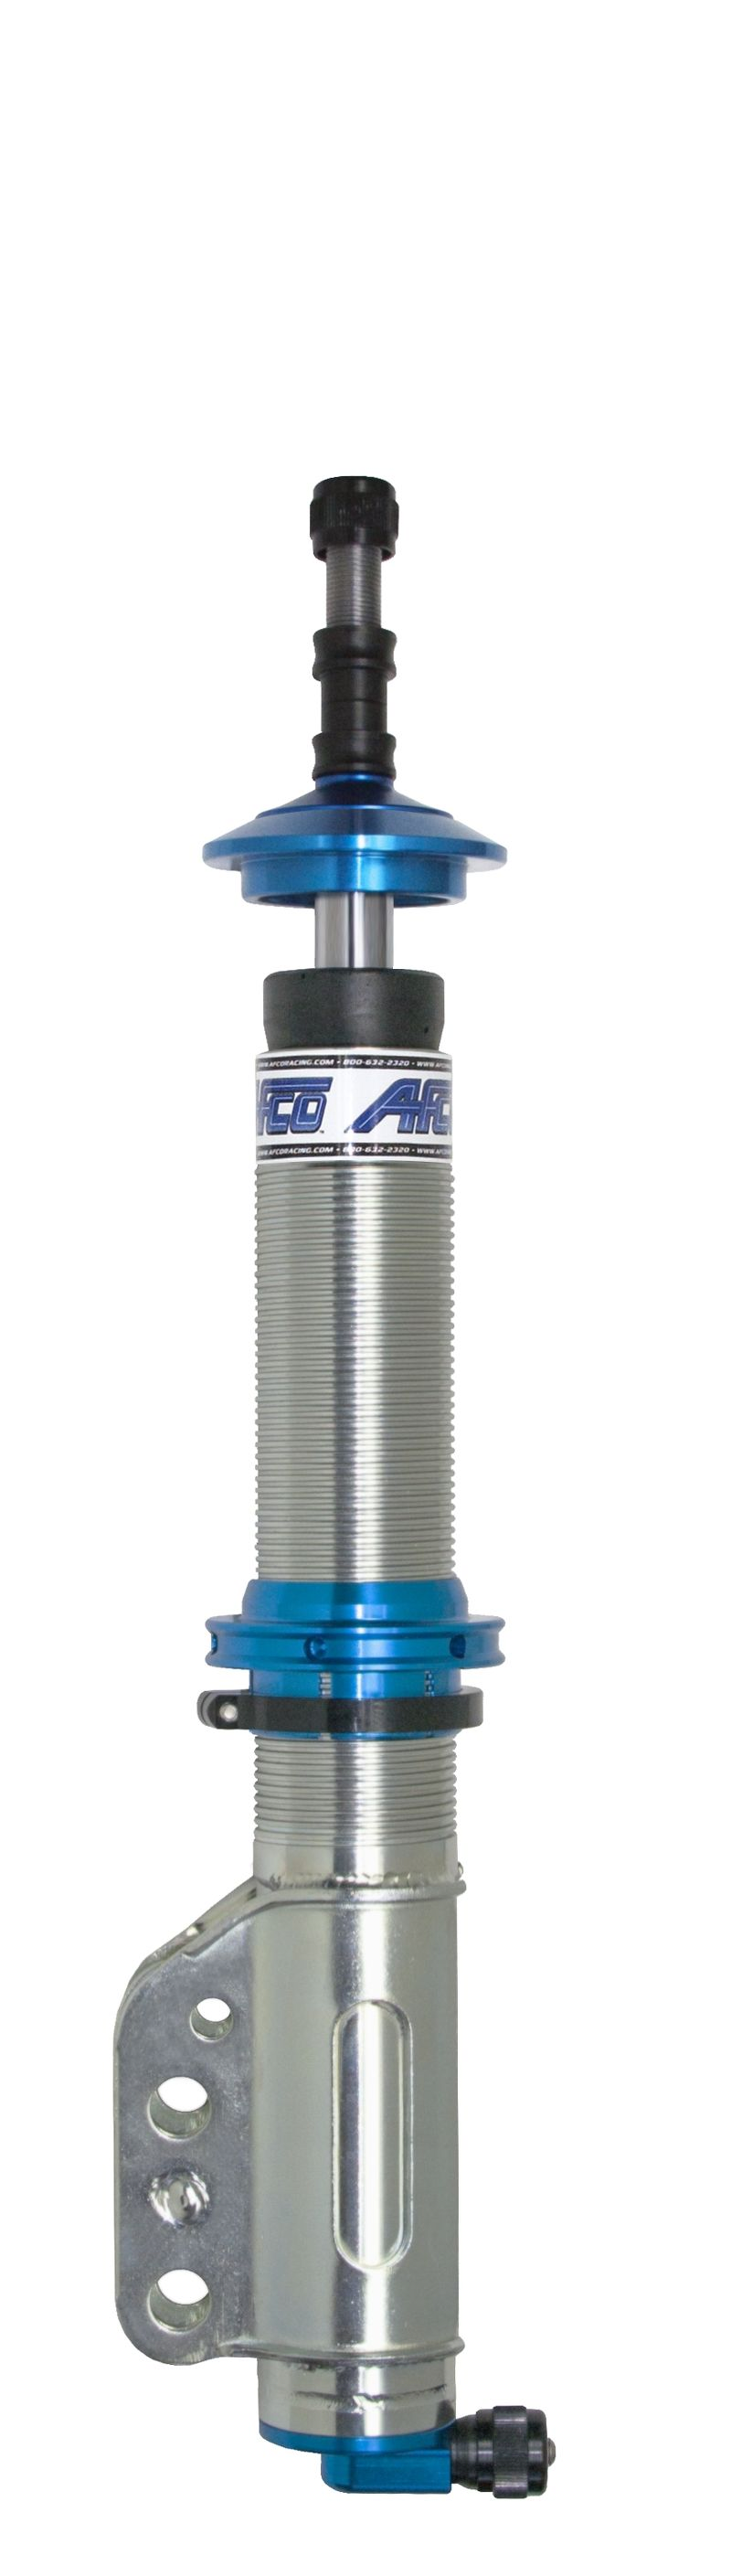 Double Adjustable Strut 1982-1992 Camaro